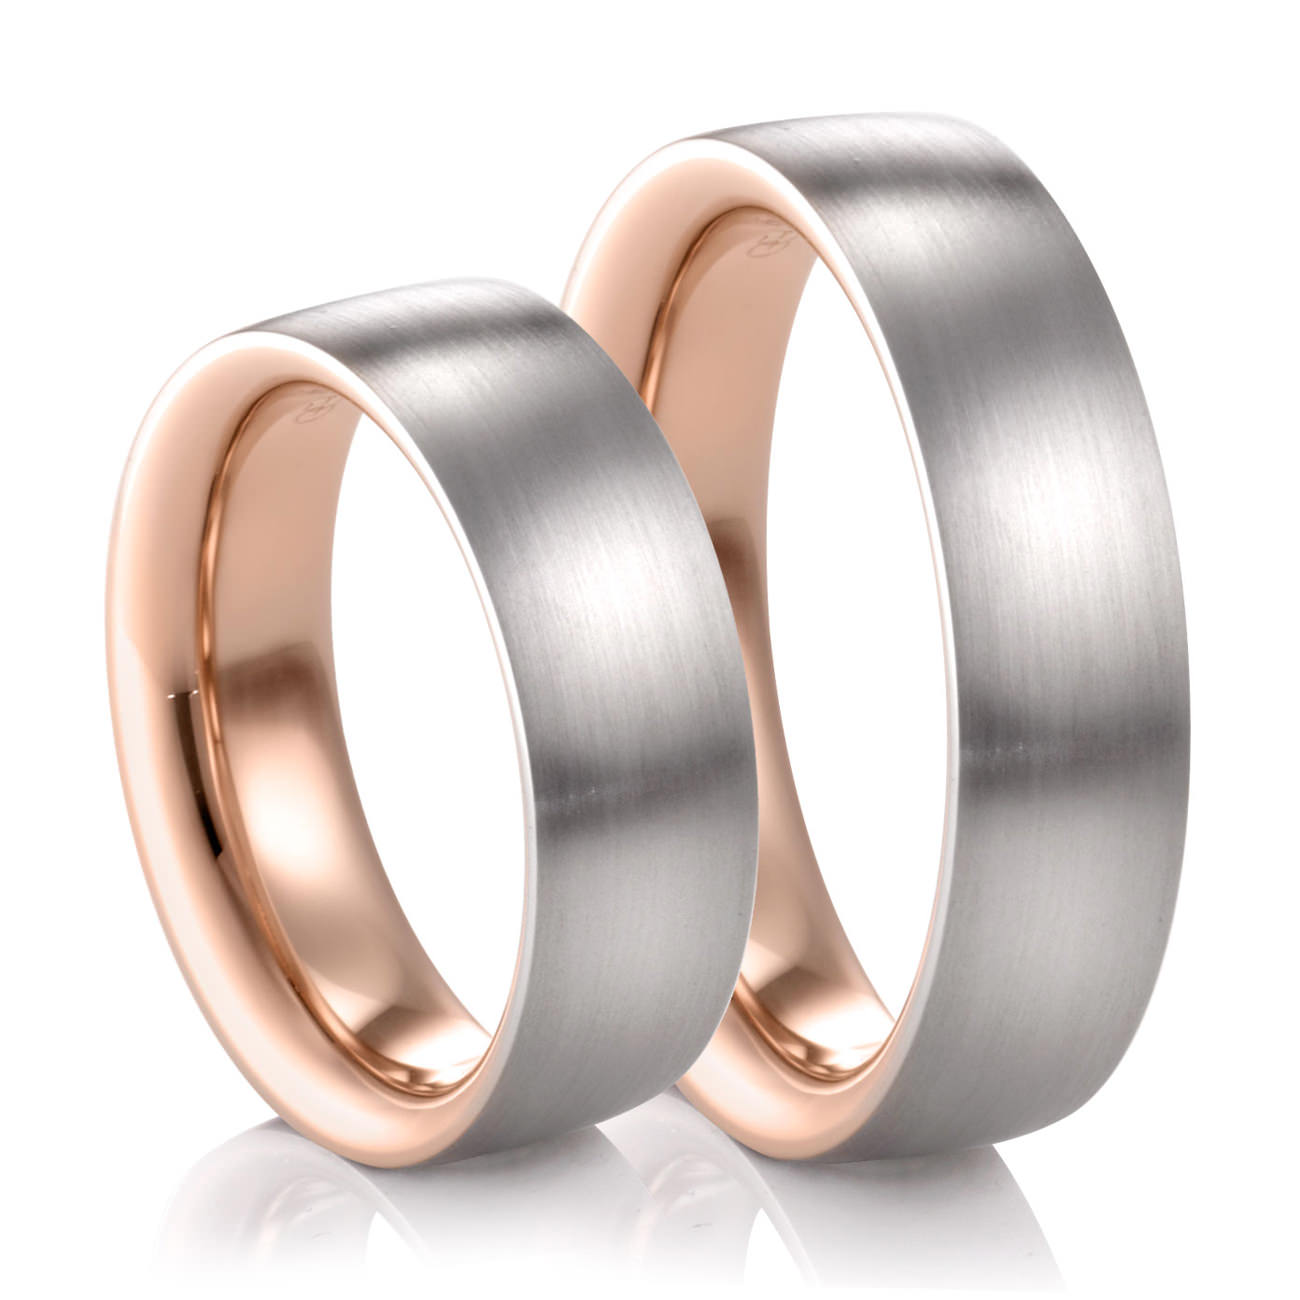 wedding custom rings commitment fingerprint sterling edge pin bands set beveled silver or outside with